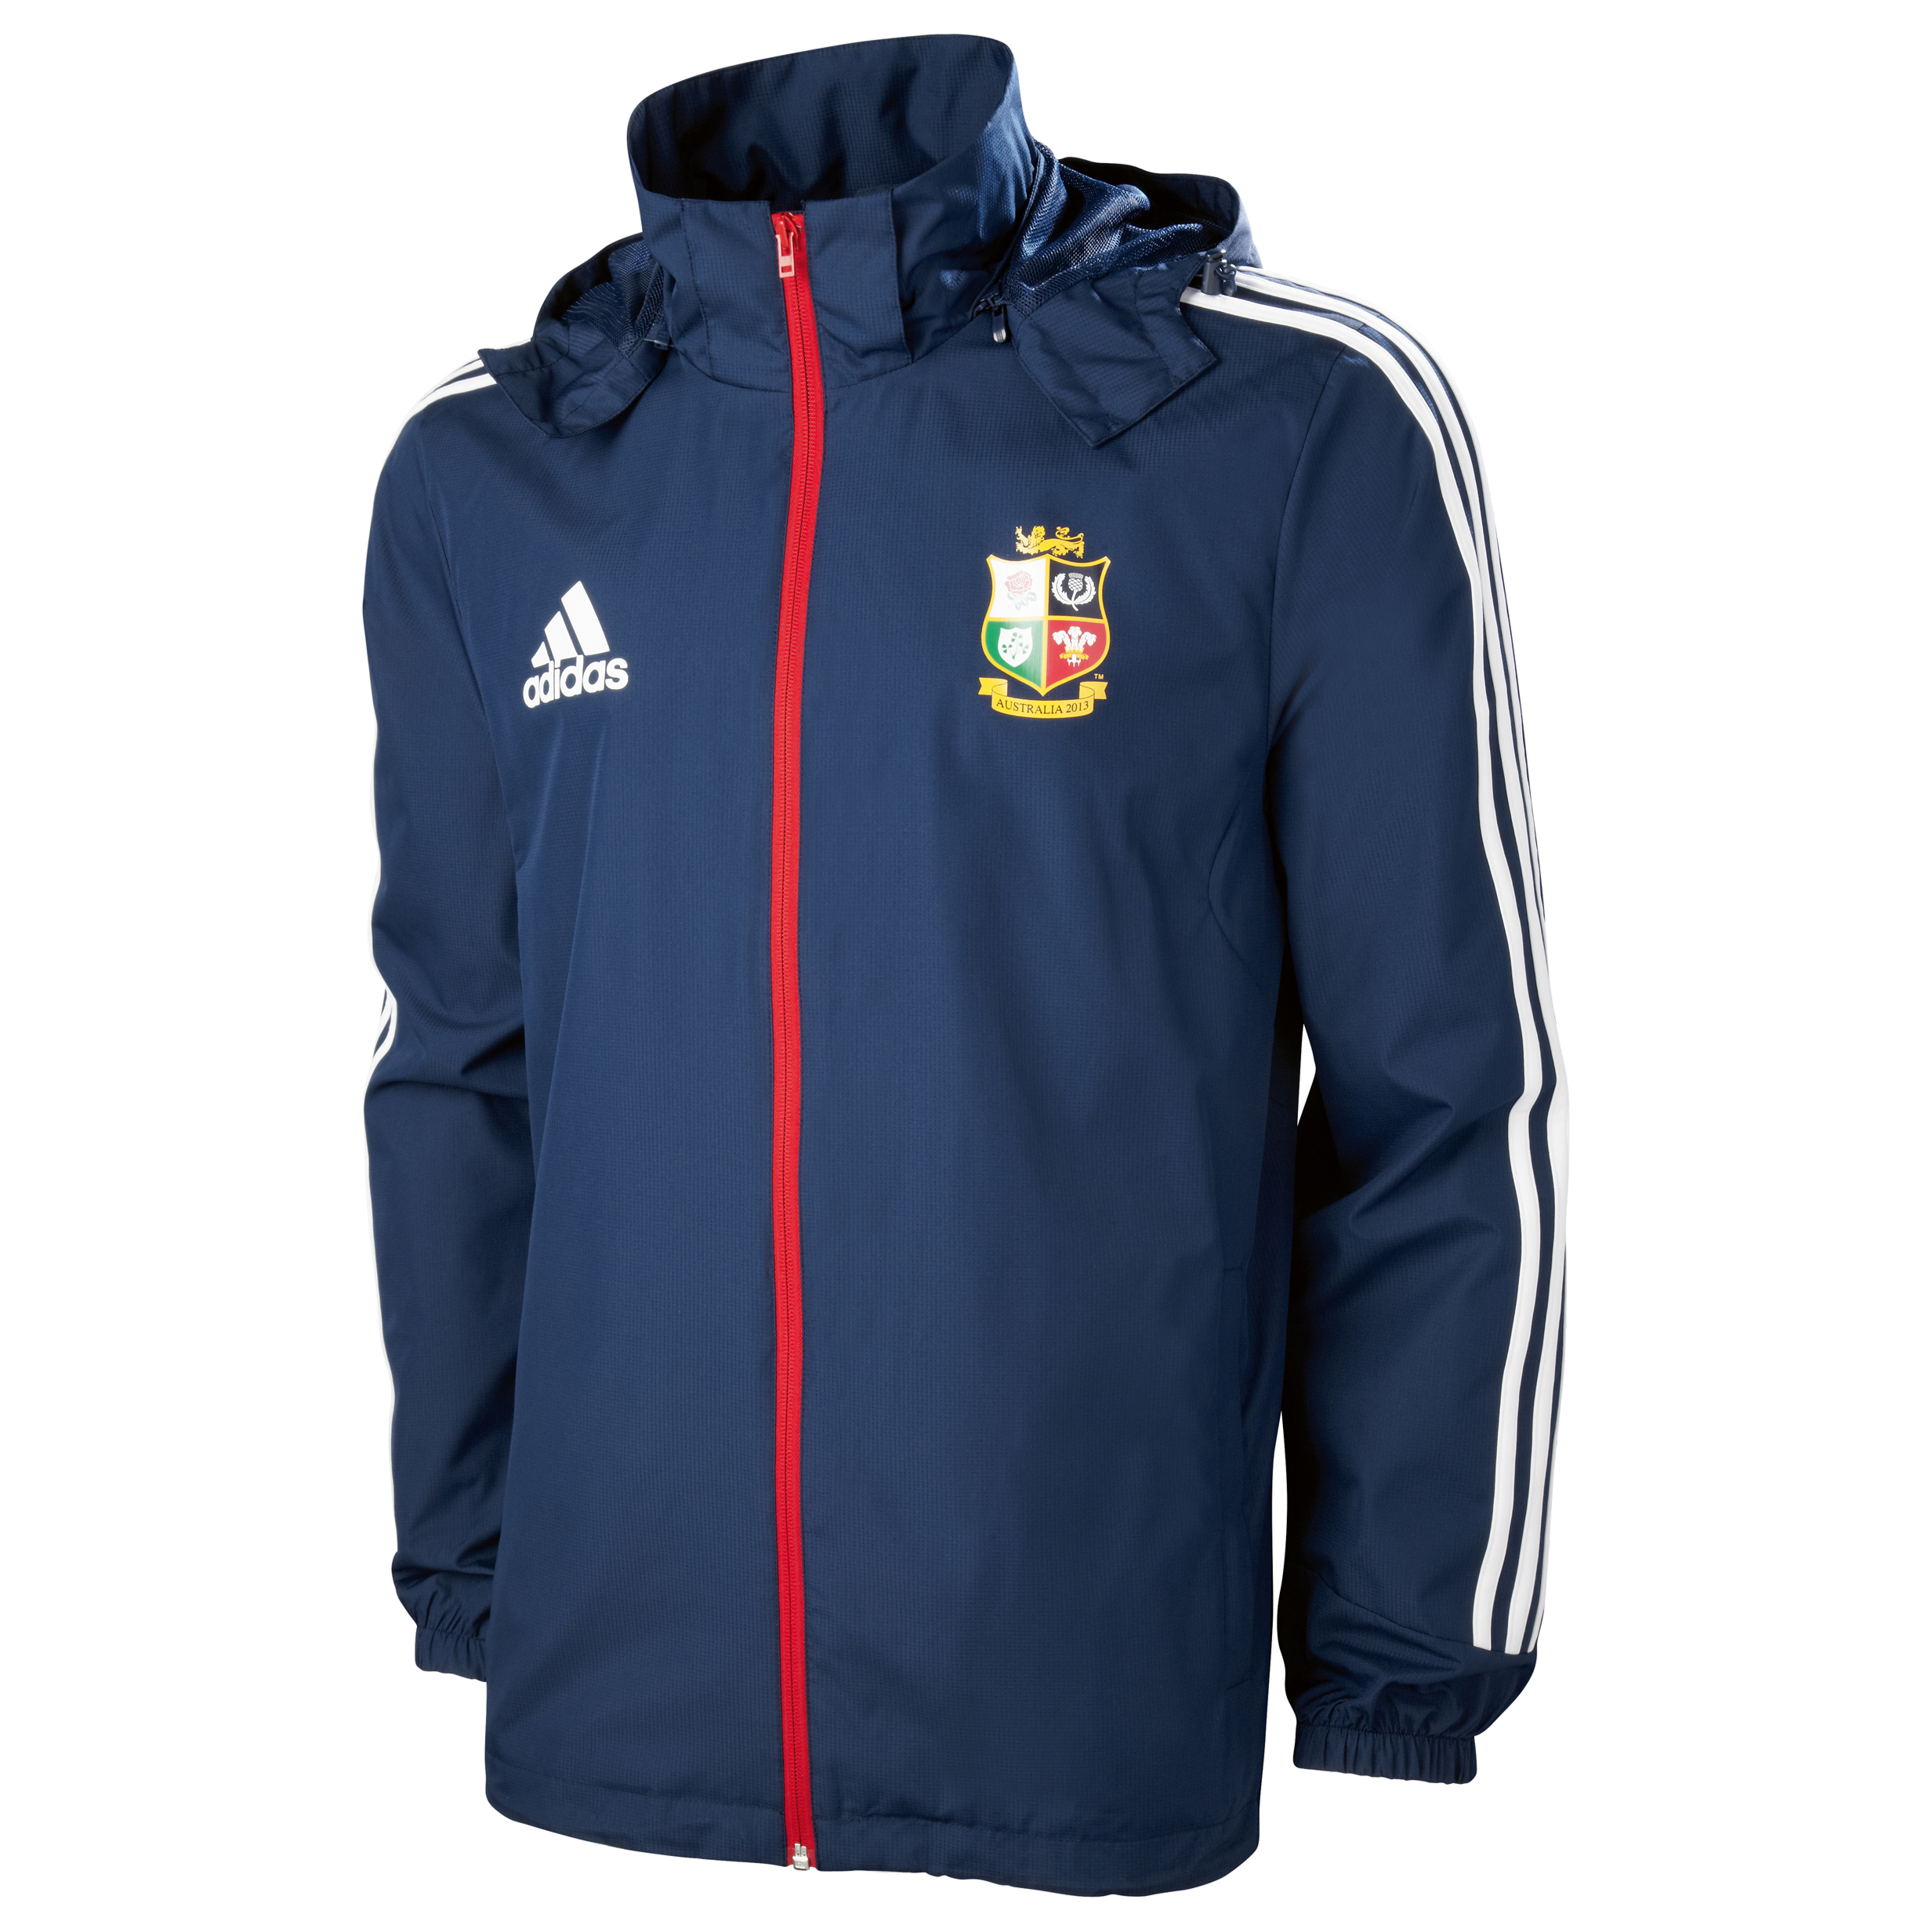 British & Irish Lions All Weather Jacket - Collegiate Navy/White